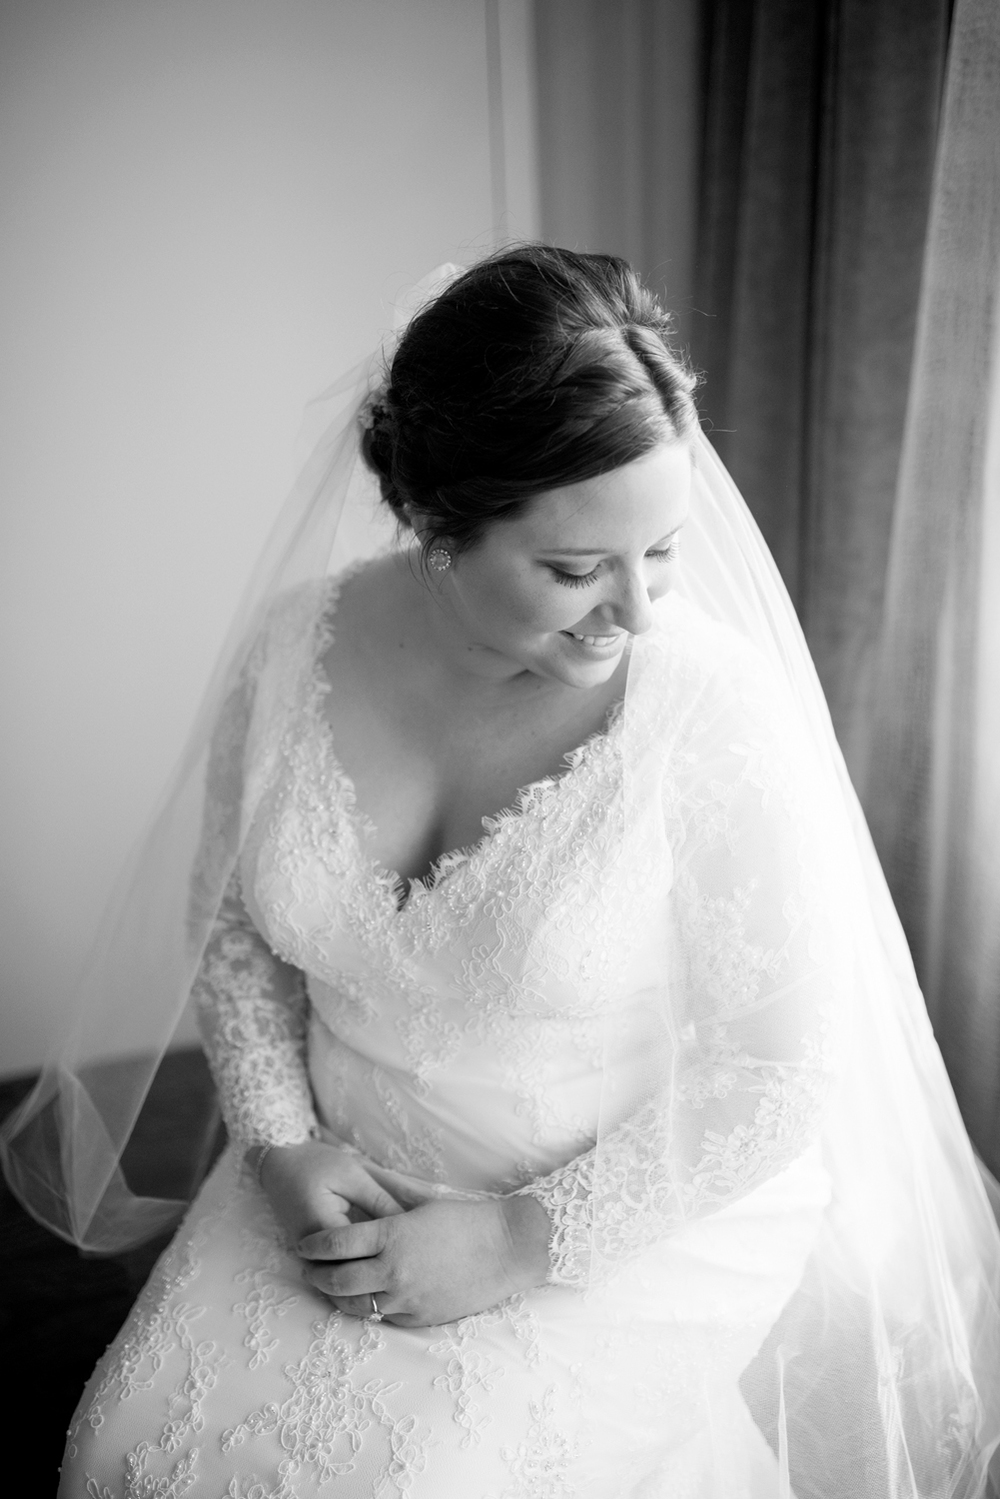 Bridal portraits in a hotel (black and white)